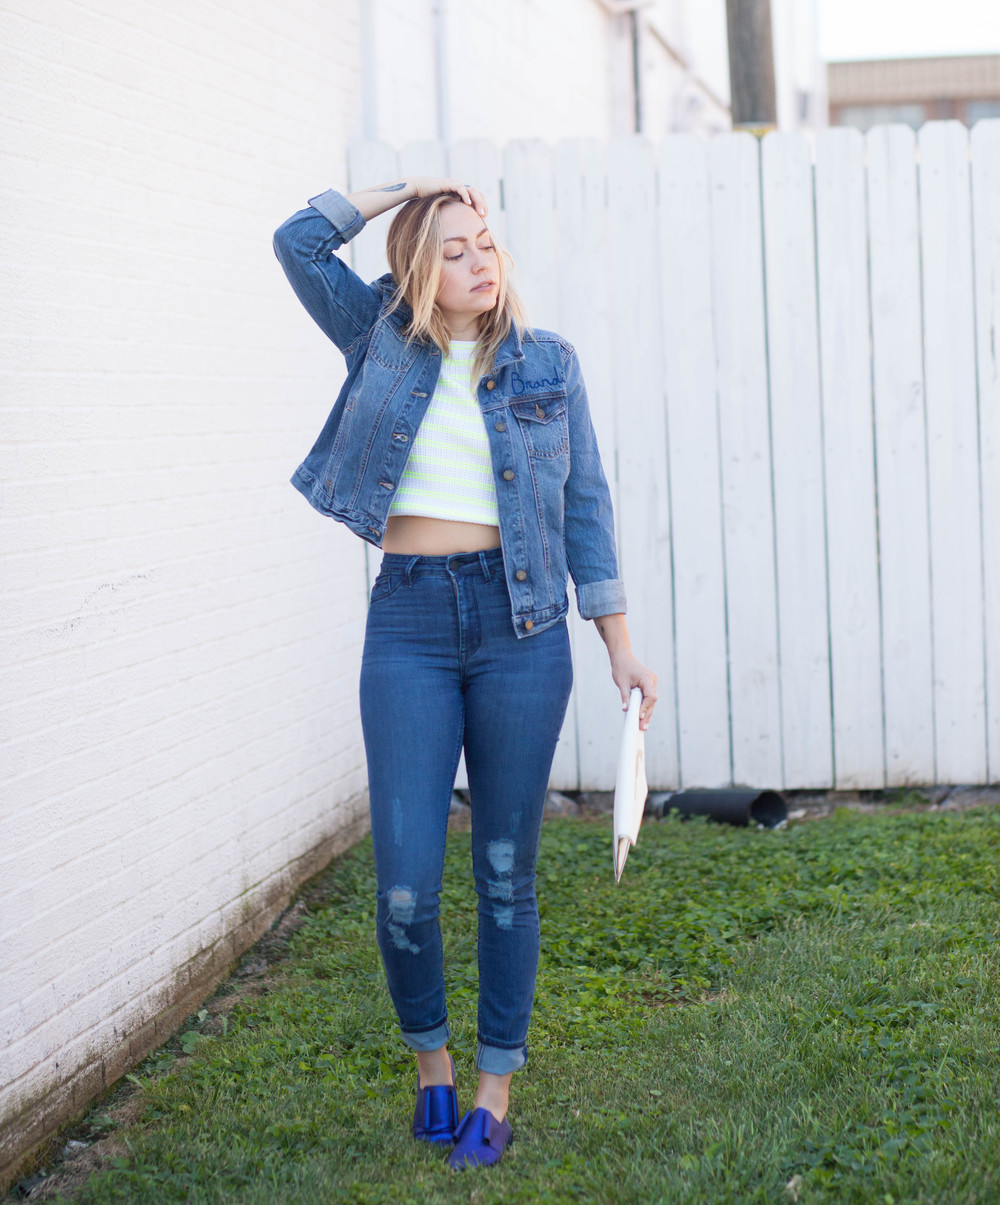 Top - Elizabeth + James | Jeans - RES Denim | Jacket - LOFT | Shoes - Miista | Clutch - DTLA Custom / Rebecca Minkoff || photos by Mandy Mooring